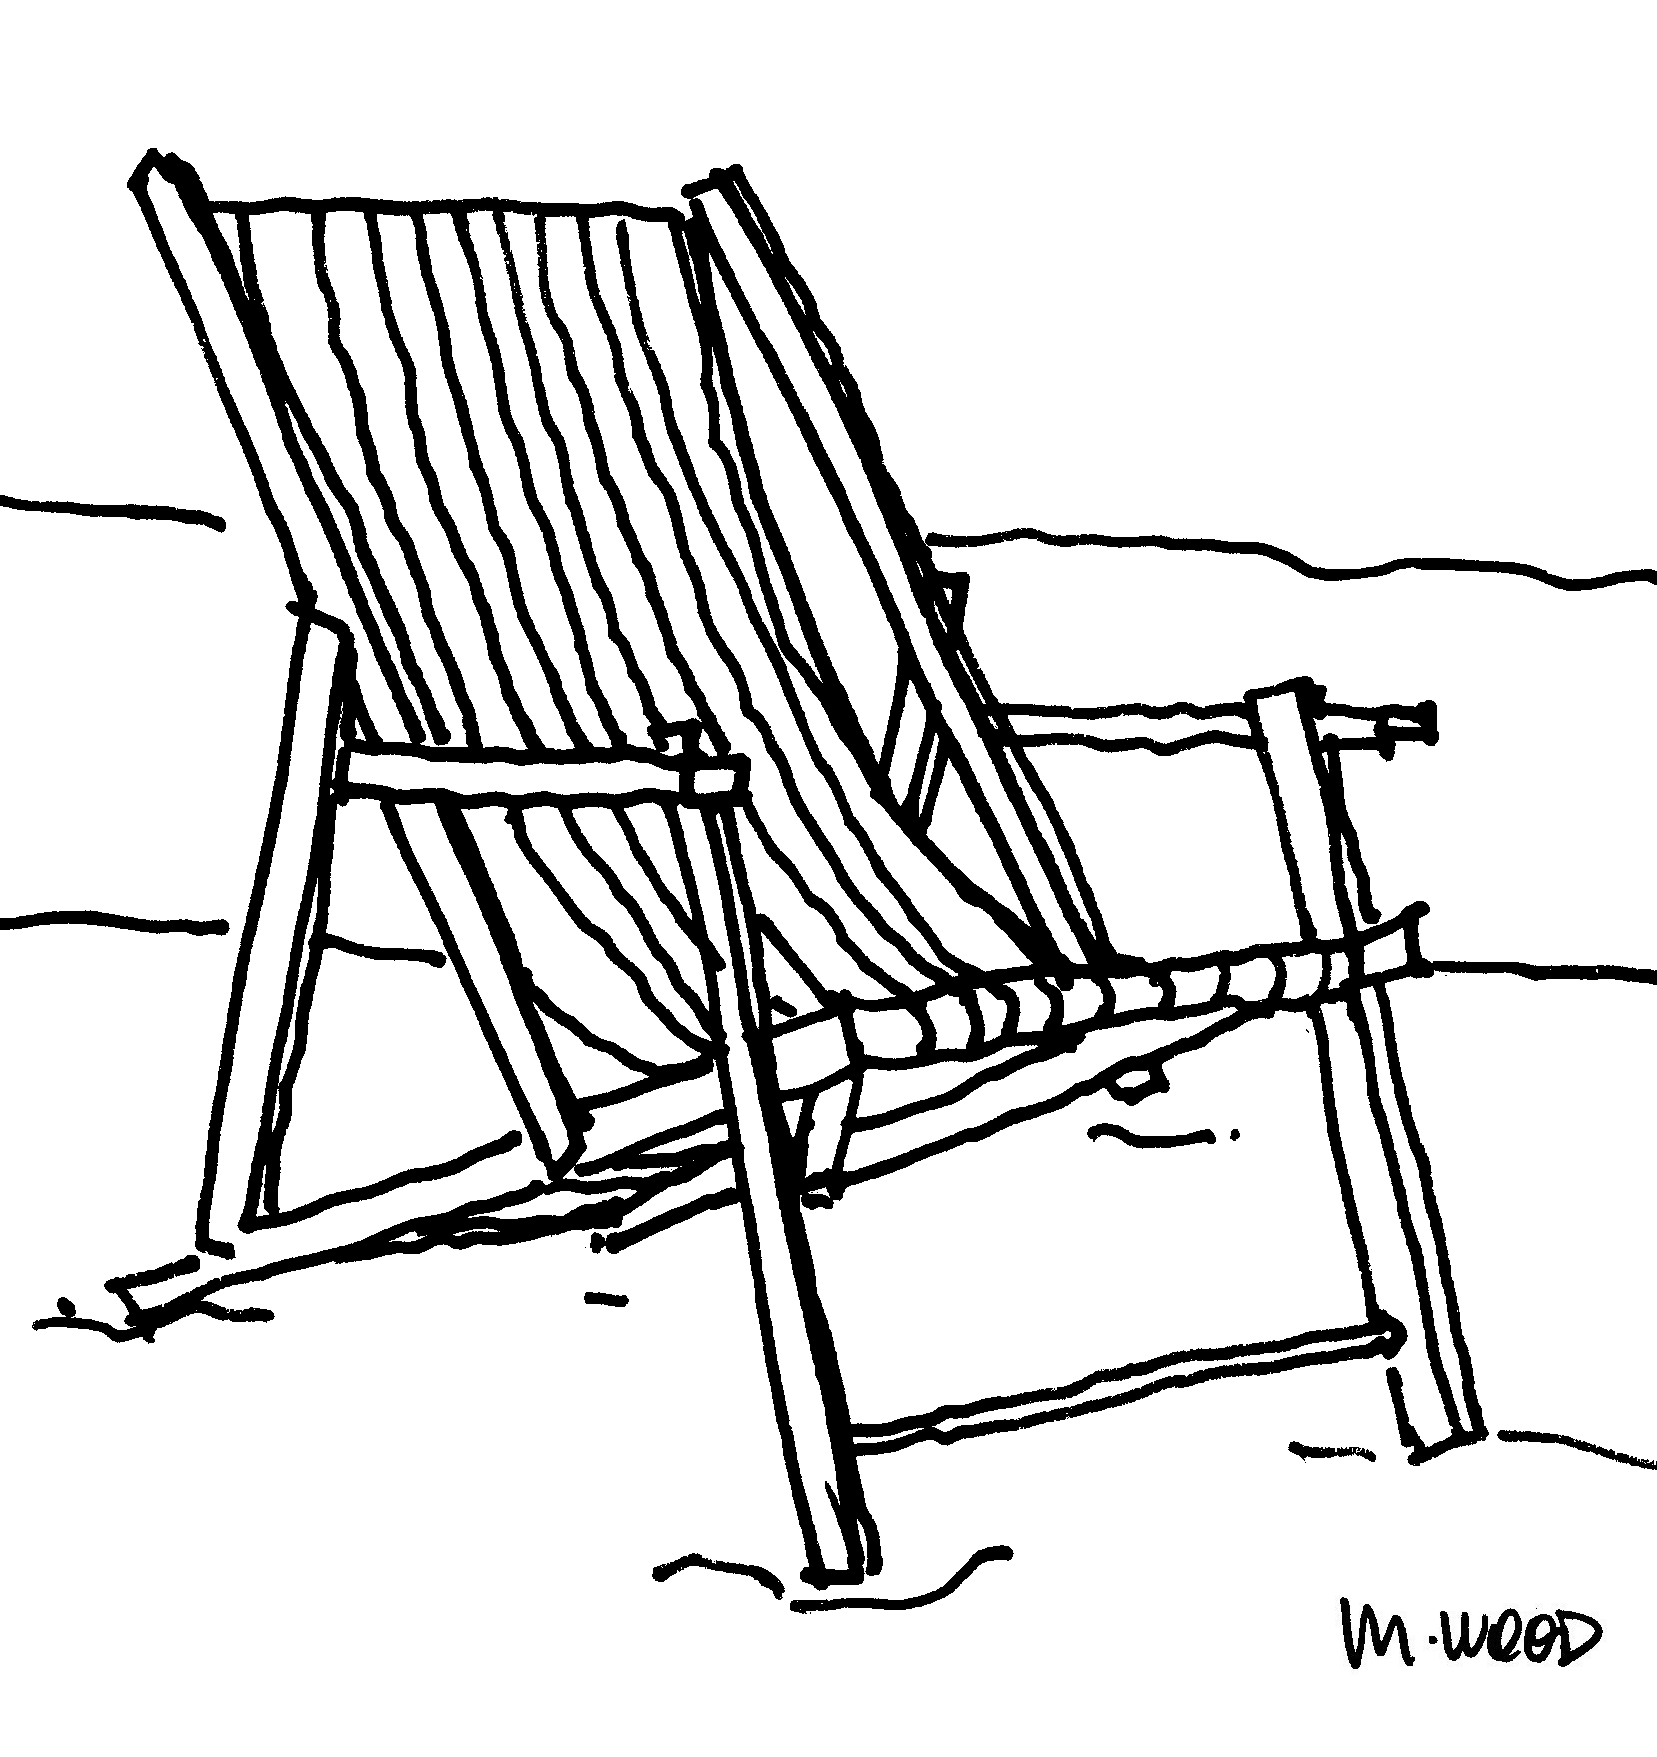 1657x1757 Build Wooden Beach Chair Plans DIY wood bin plans wiry45oha  sc 1 st  GetDrawings.com & Beach Chair Drawing at GetDrawings.com | Free for personal use Beach ...